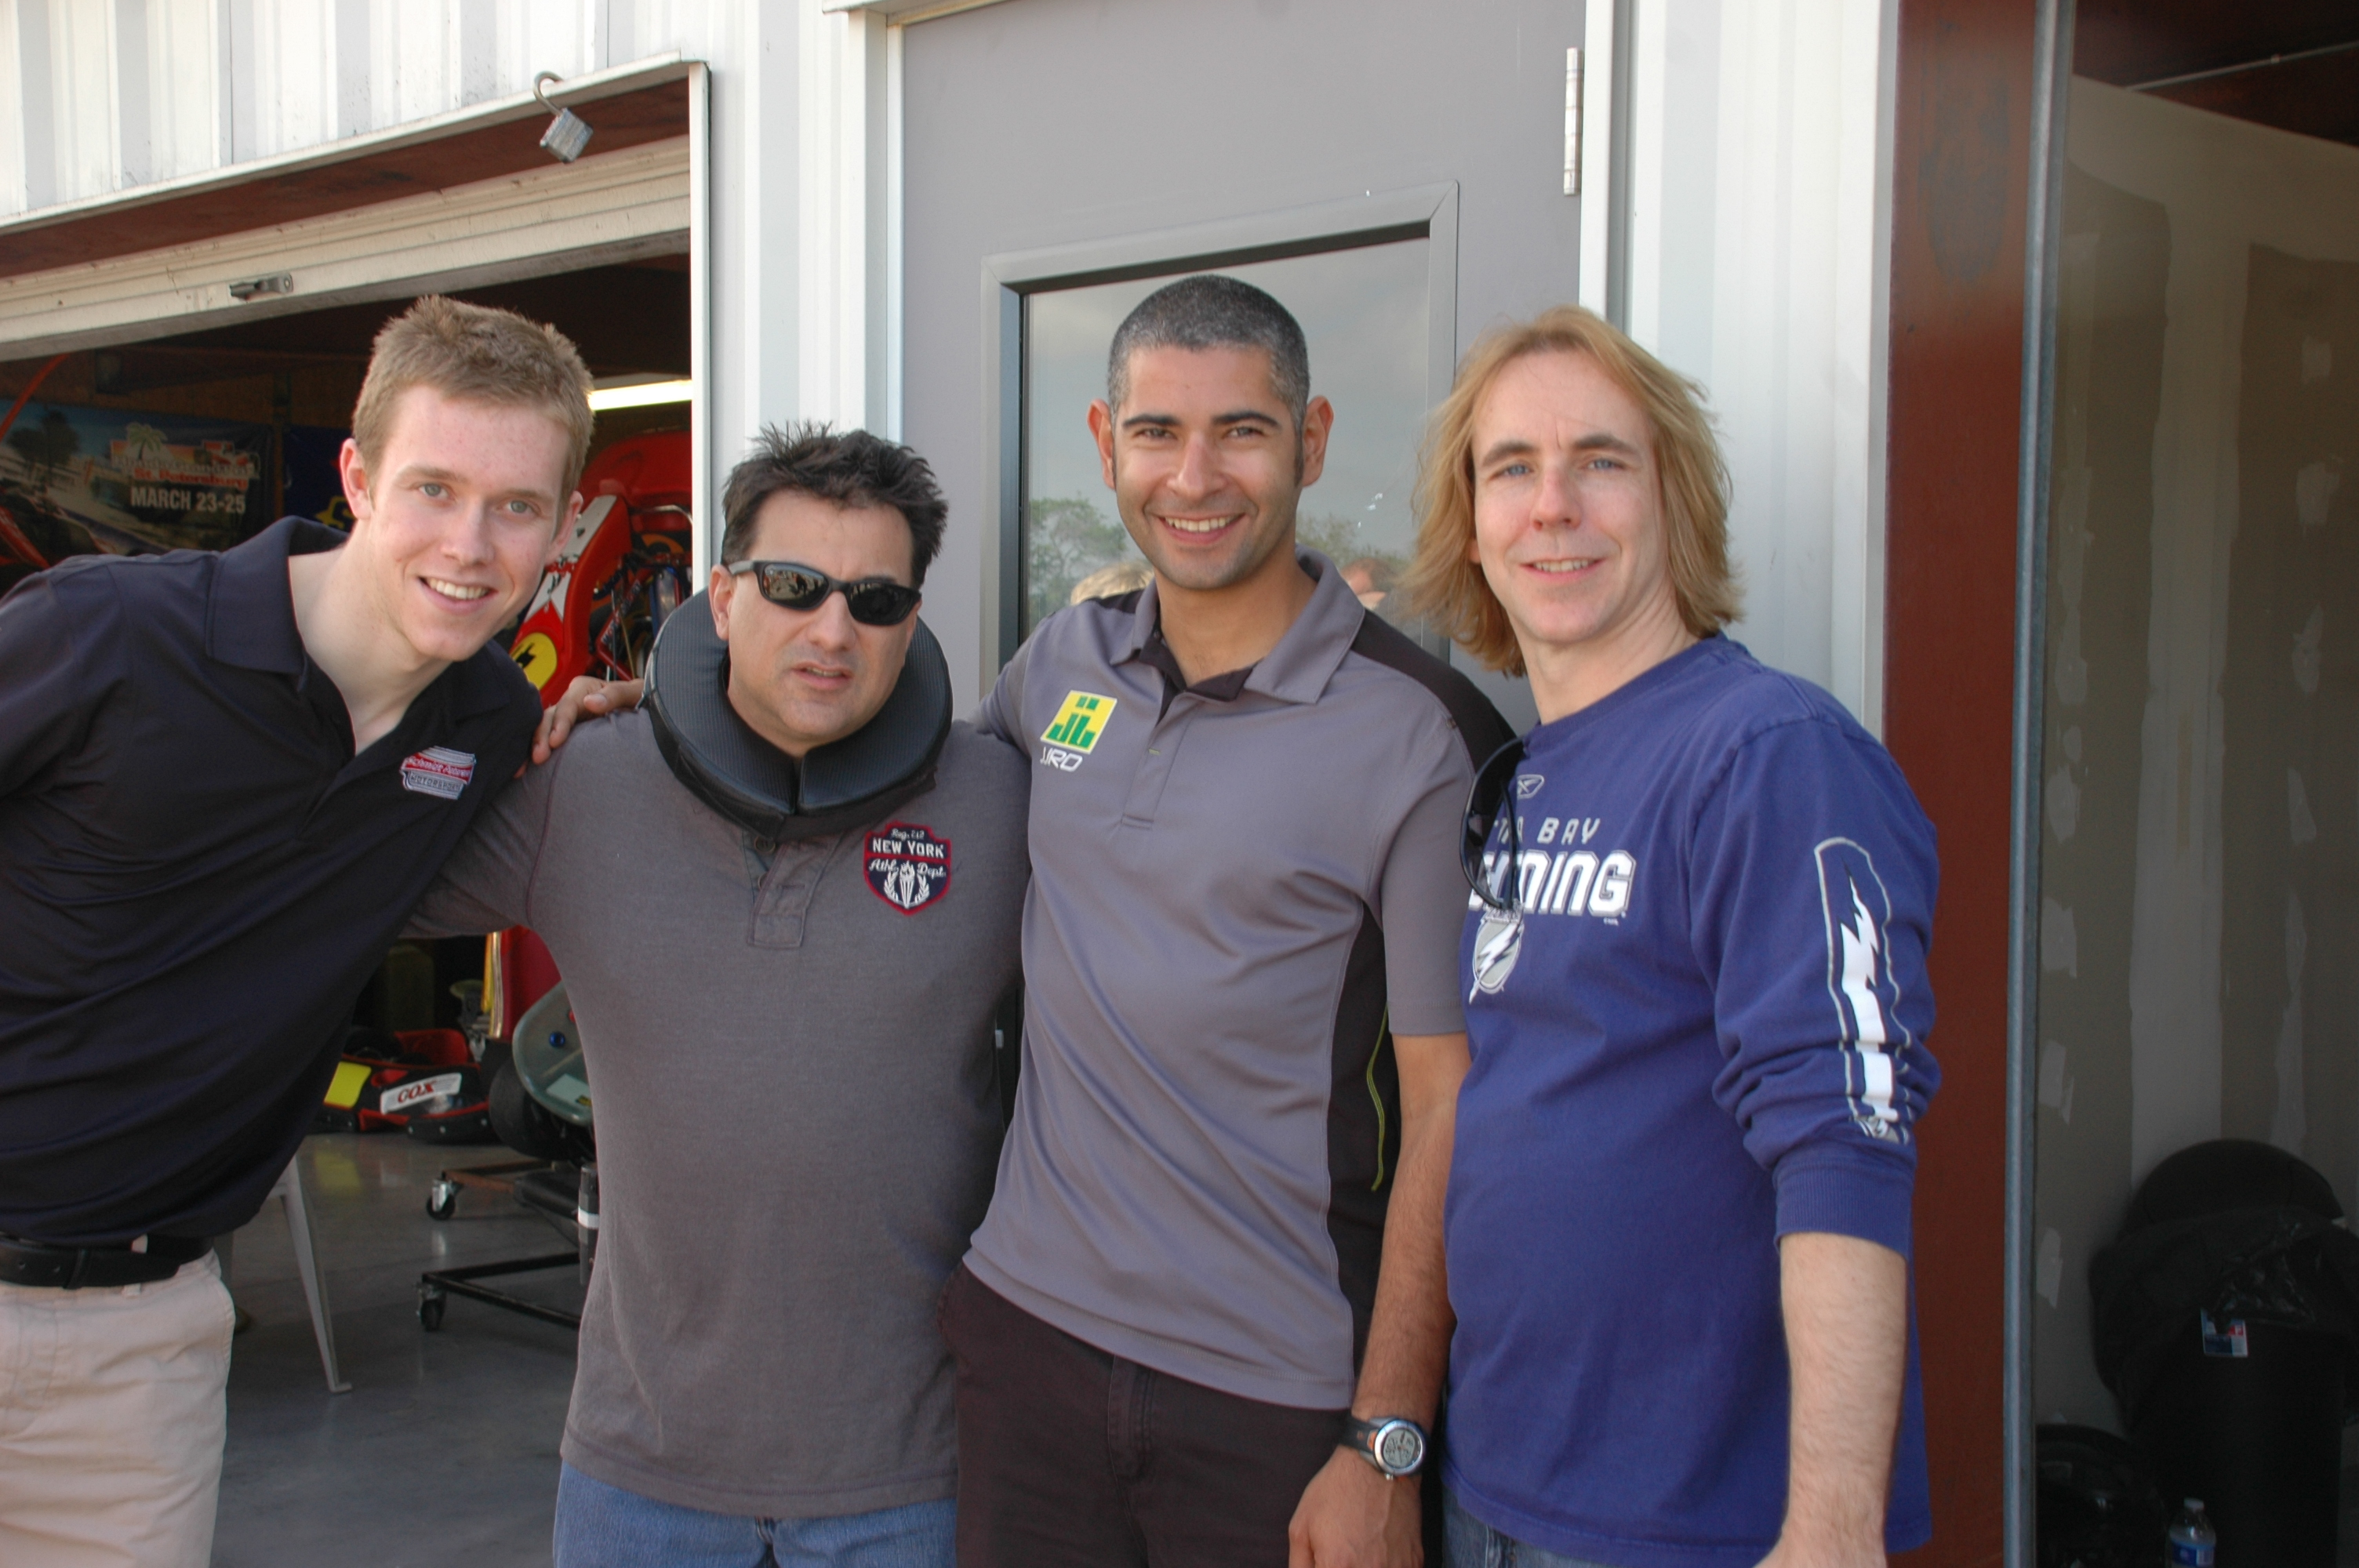 Start your engines, well soon enough!  Left to Right: Jack Hawksworth, Rick Sassone, Jonatan Jorge and Travis Failey (photo: Wendy Eckhardt / Rocket Sports & Entertainment)